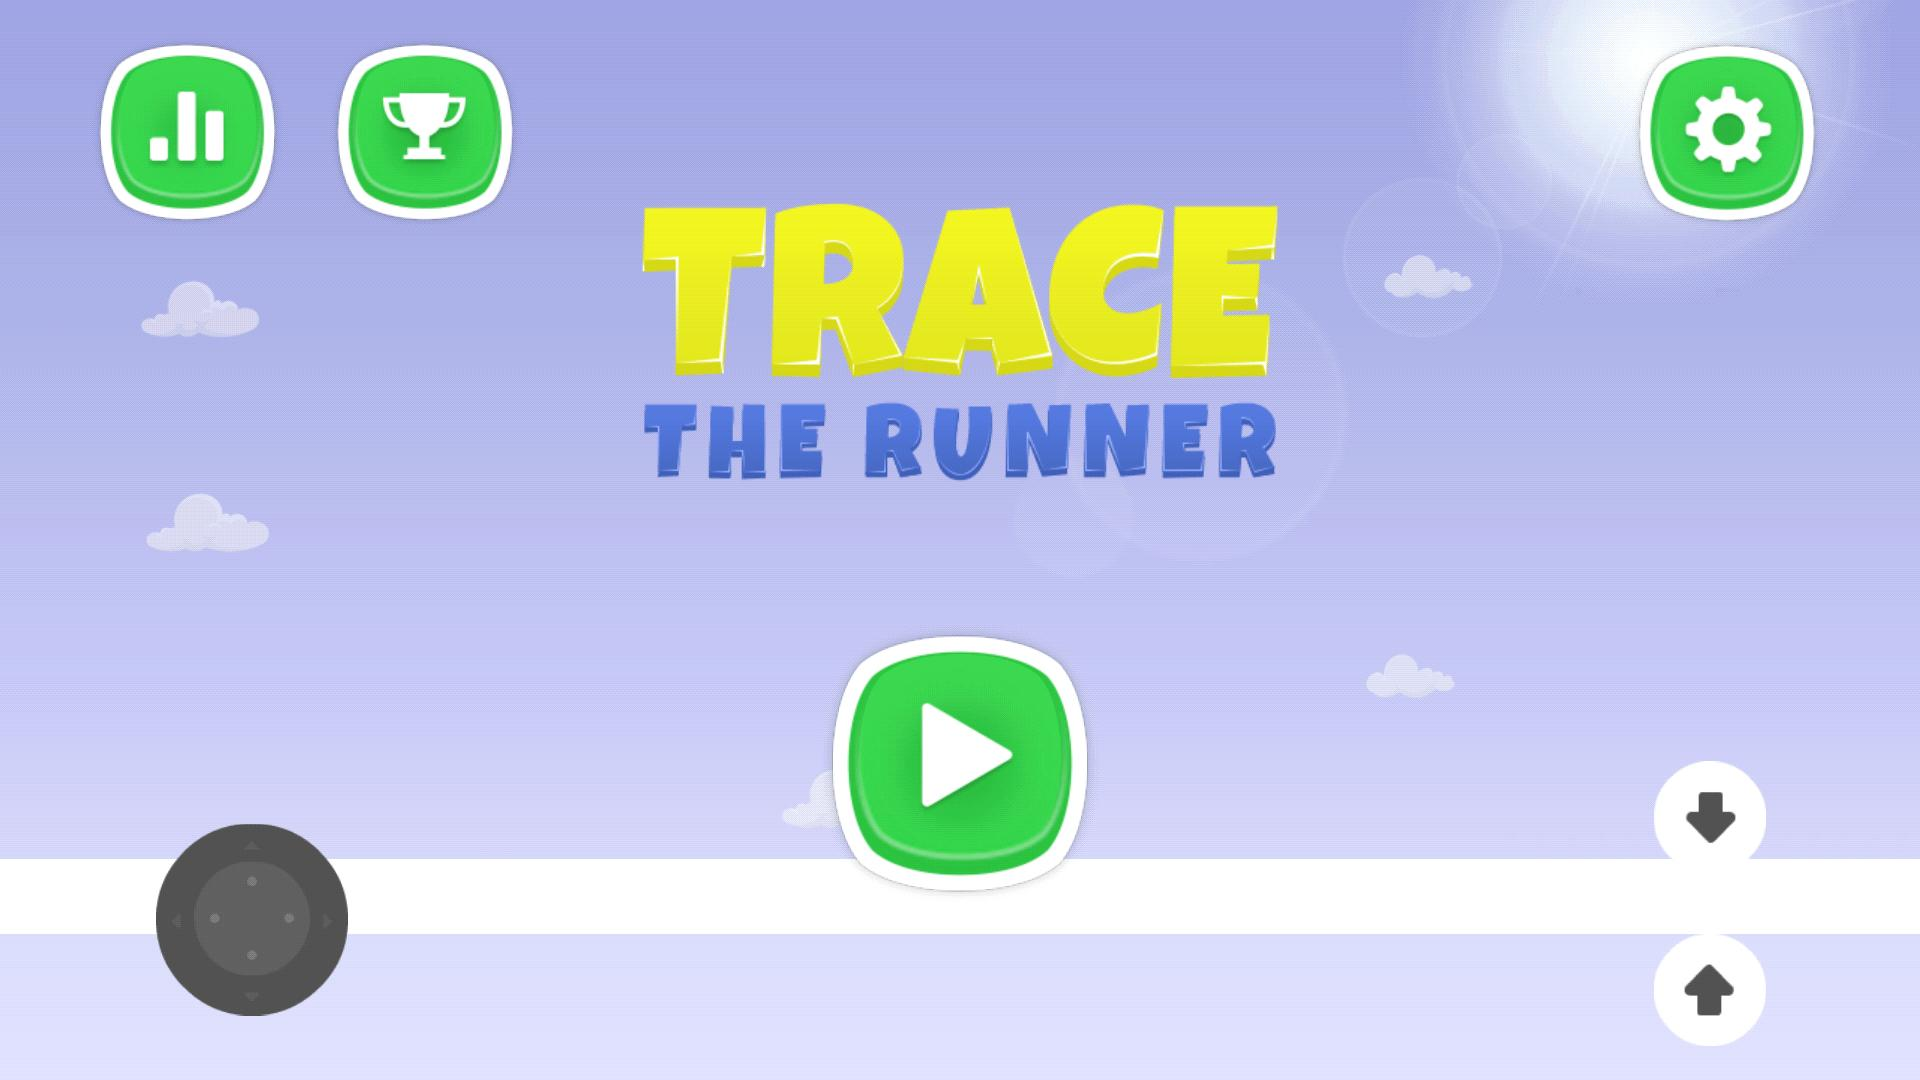 Trace The Runner poster